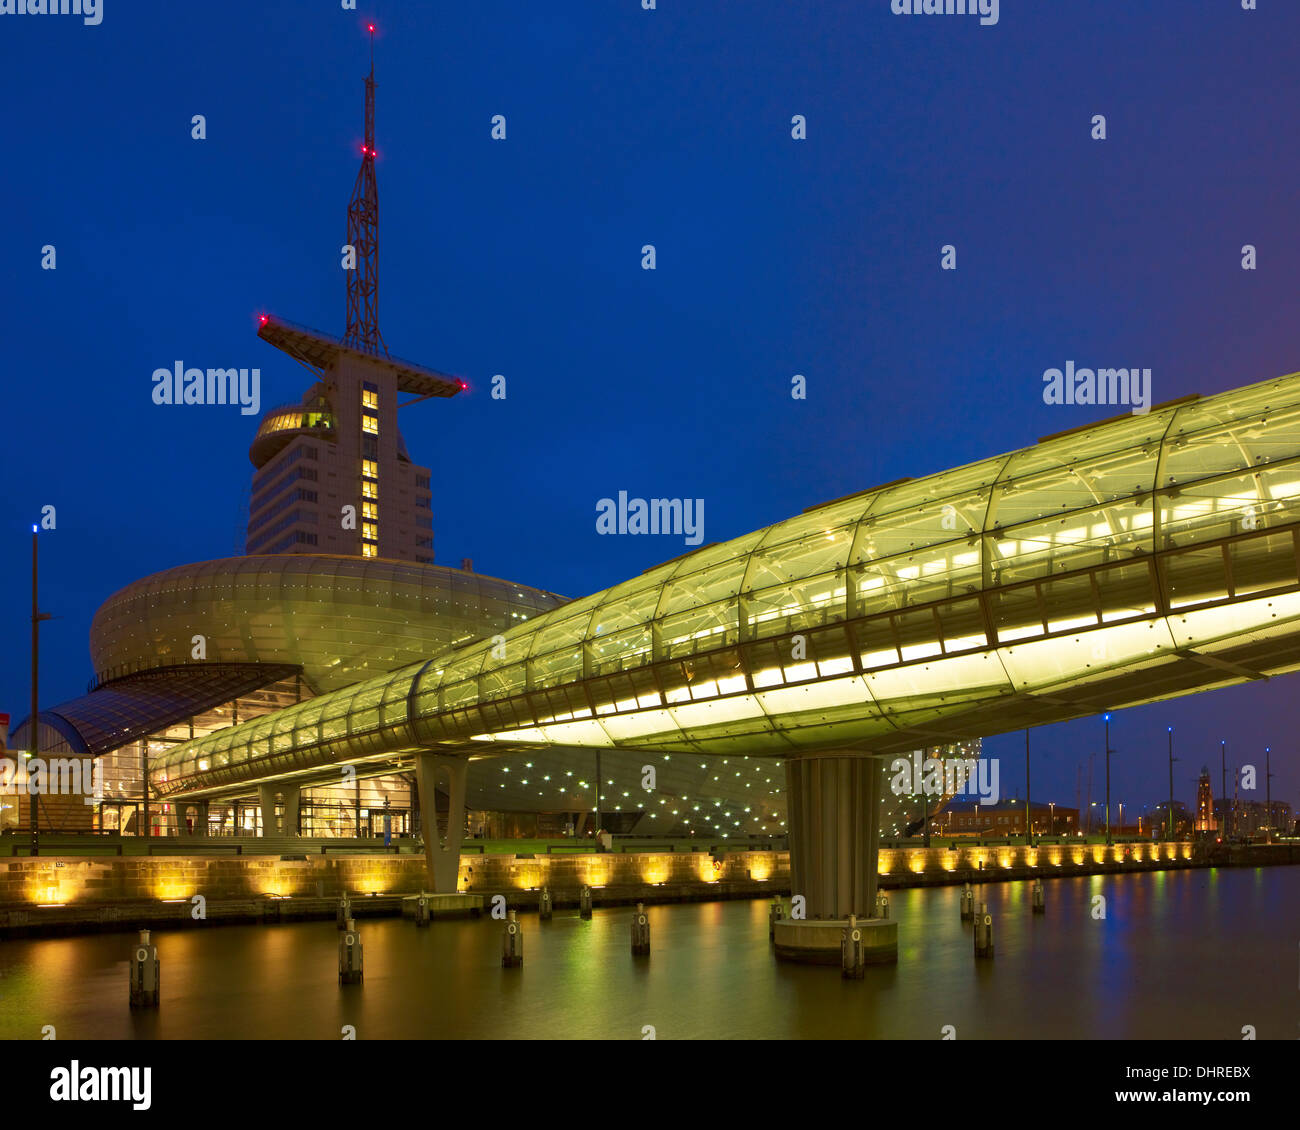 Atlantic Hotel Sail City and Klimahaus, Bremerhaven, Bremen, Germany - Stock Image